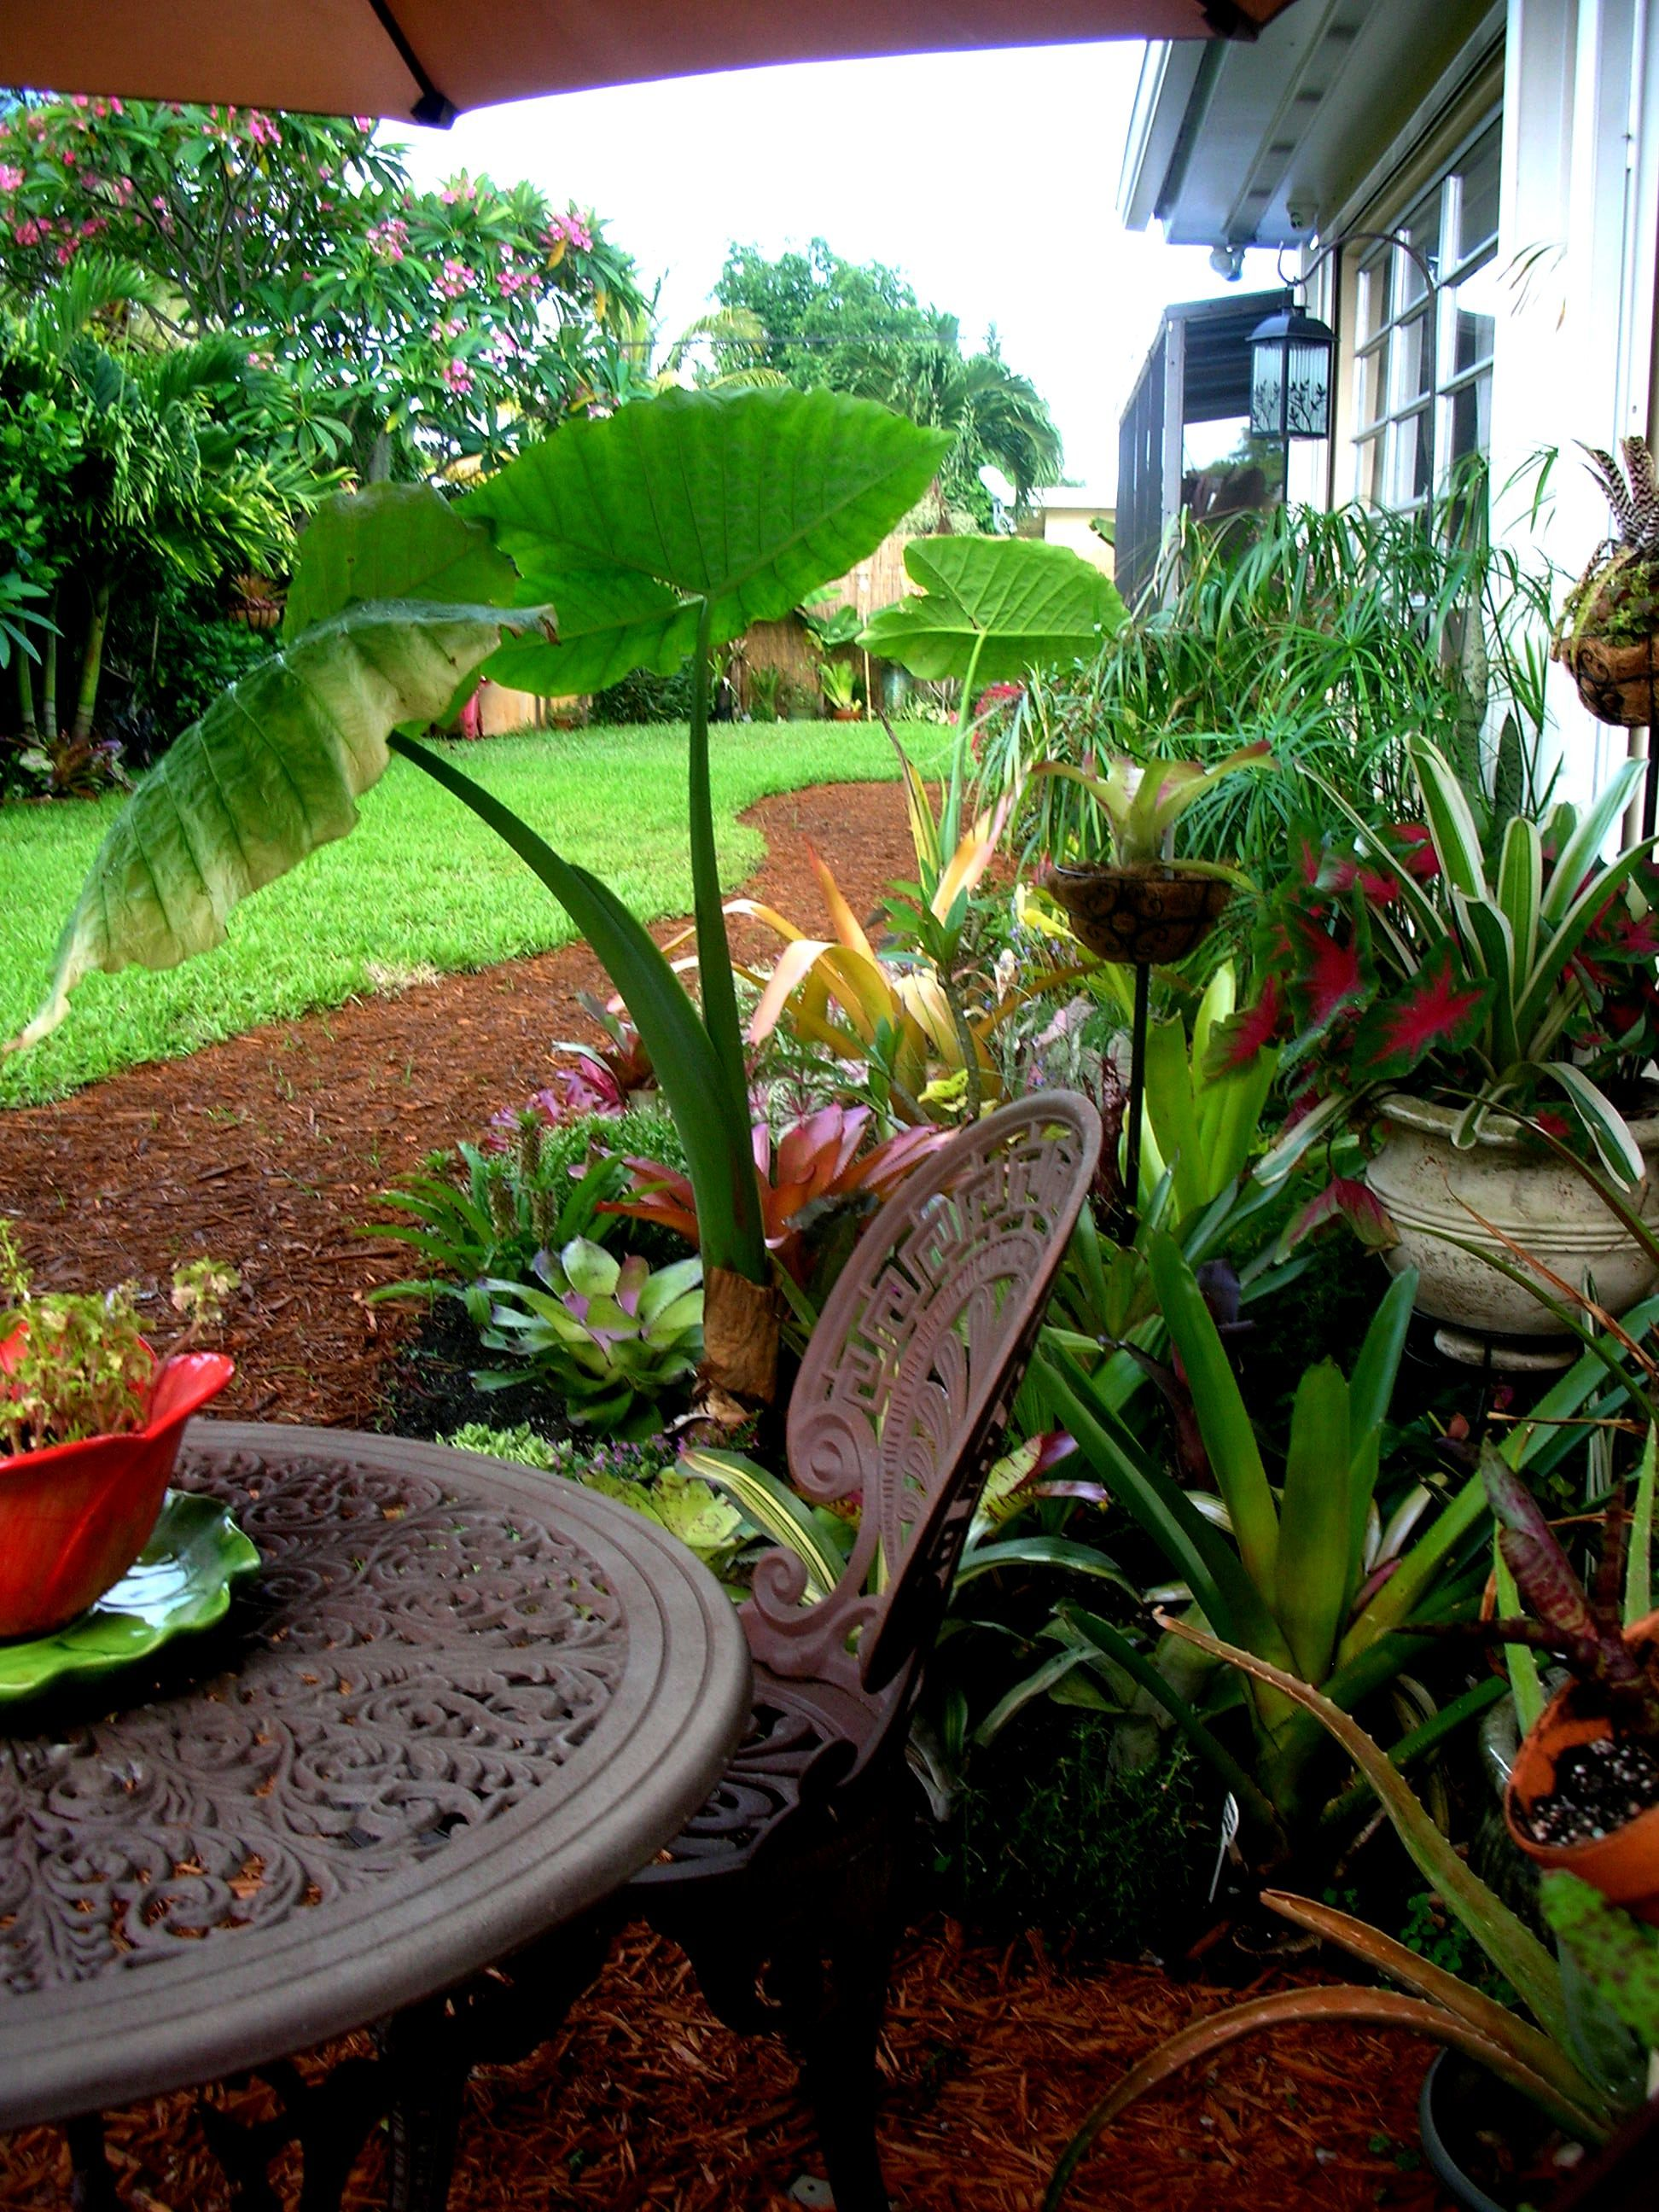 mini tropical oasis morning coffee spot ensconced in bromeliads